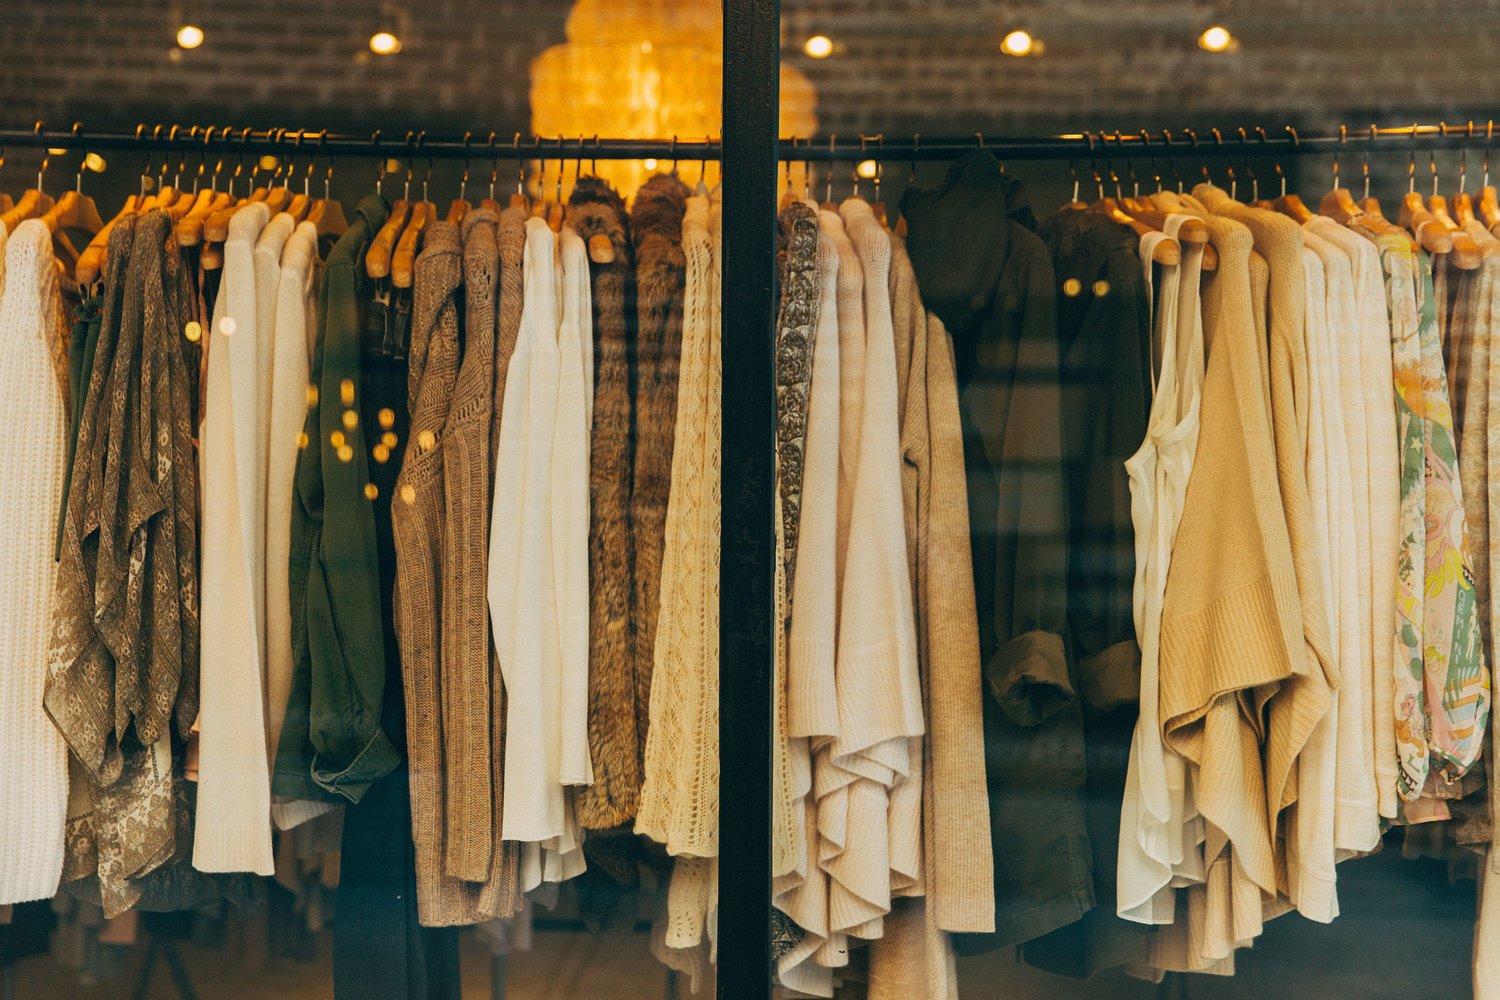 Low-quality cheap clothes are not only harming the environment but also affecting out wallets